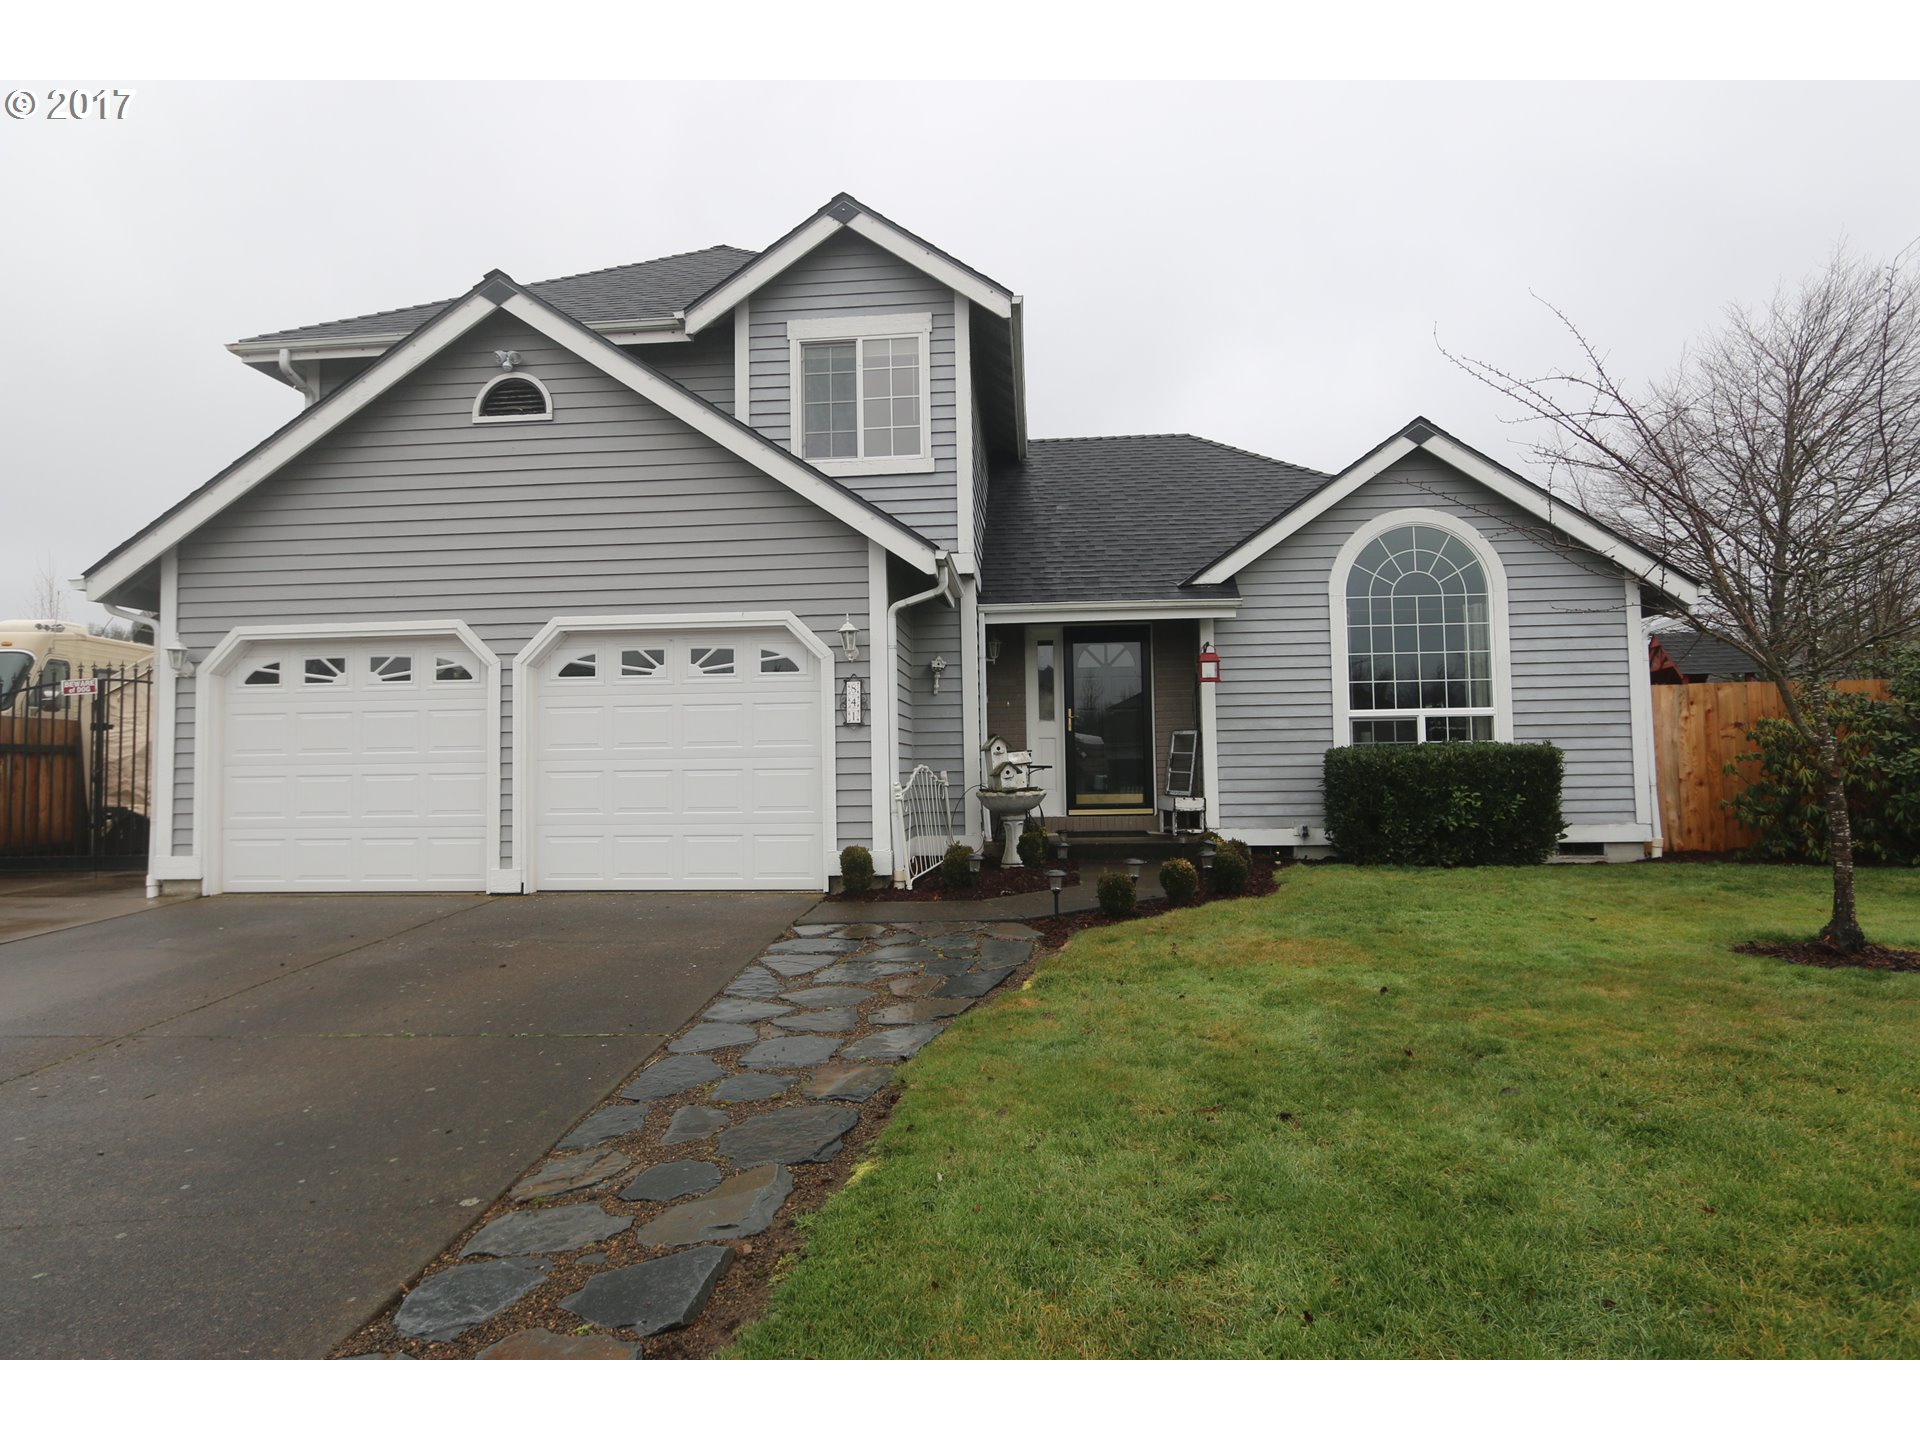 841 S 45TH PL, Springfield, OR 97478